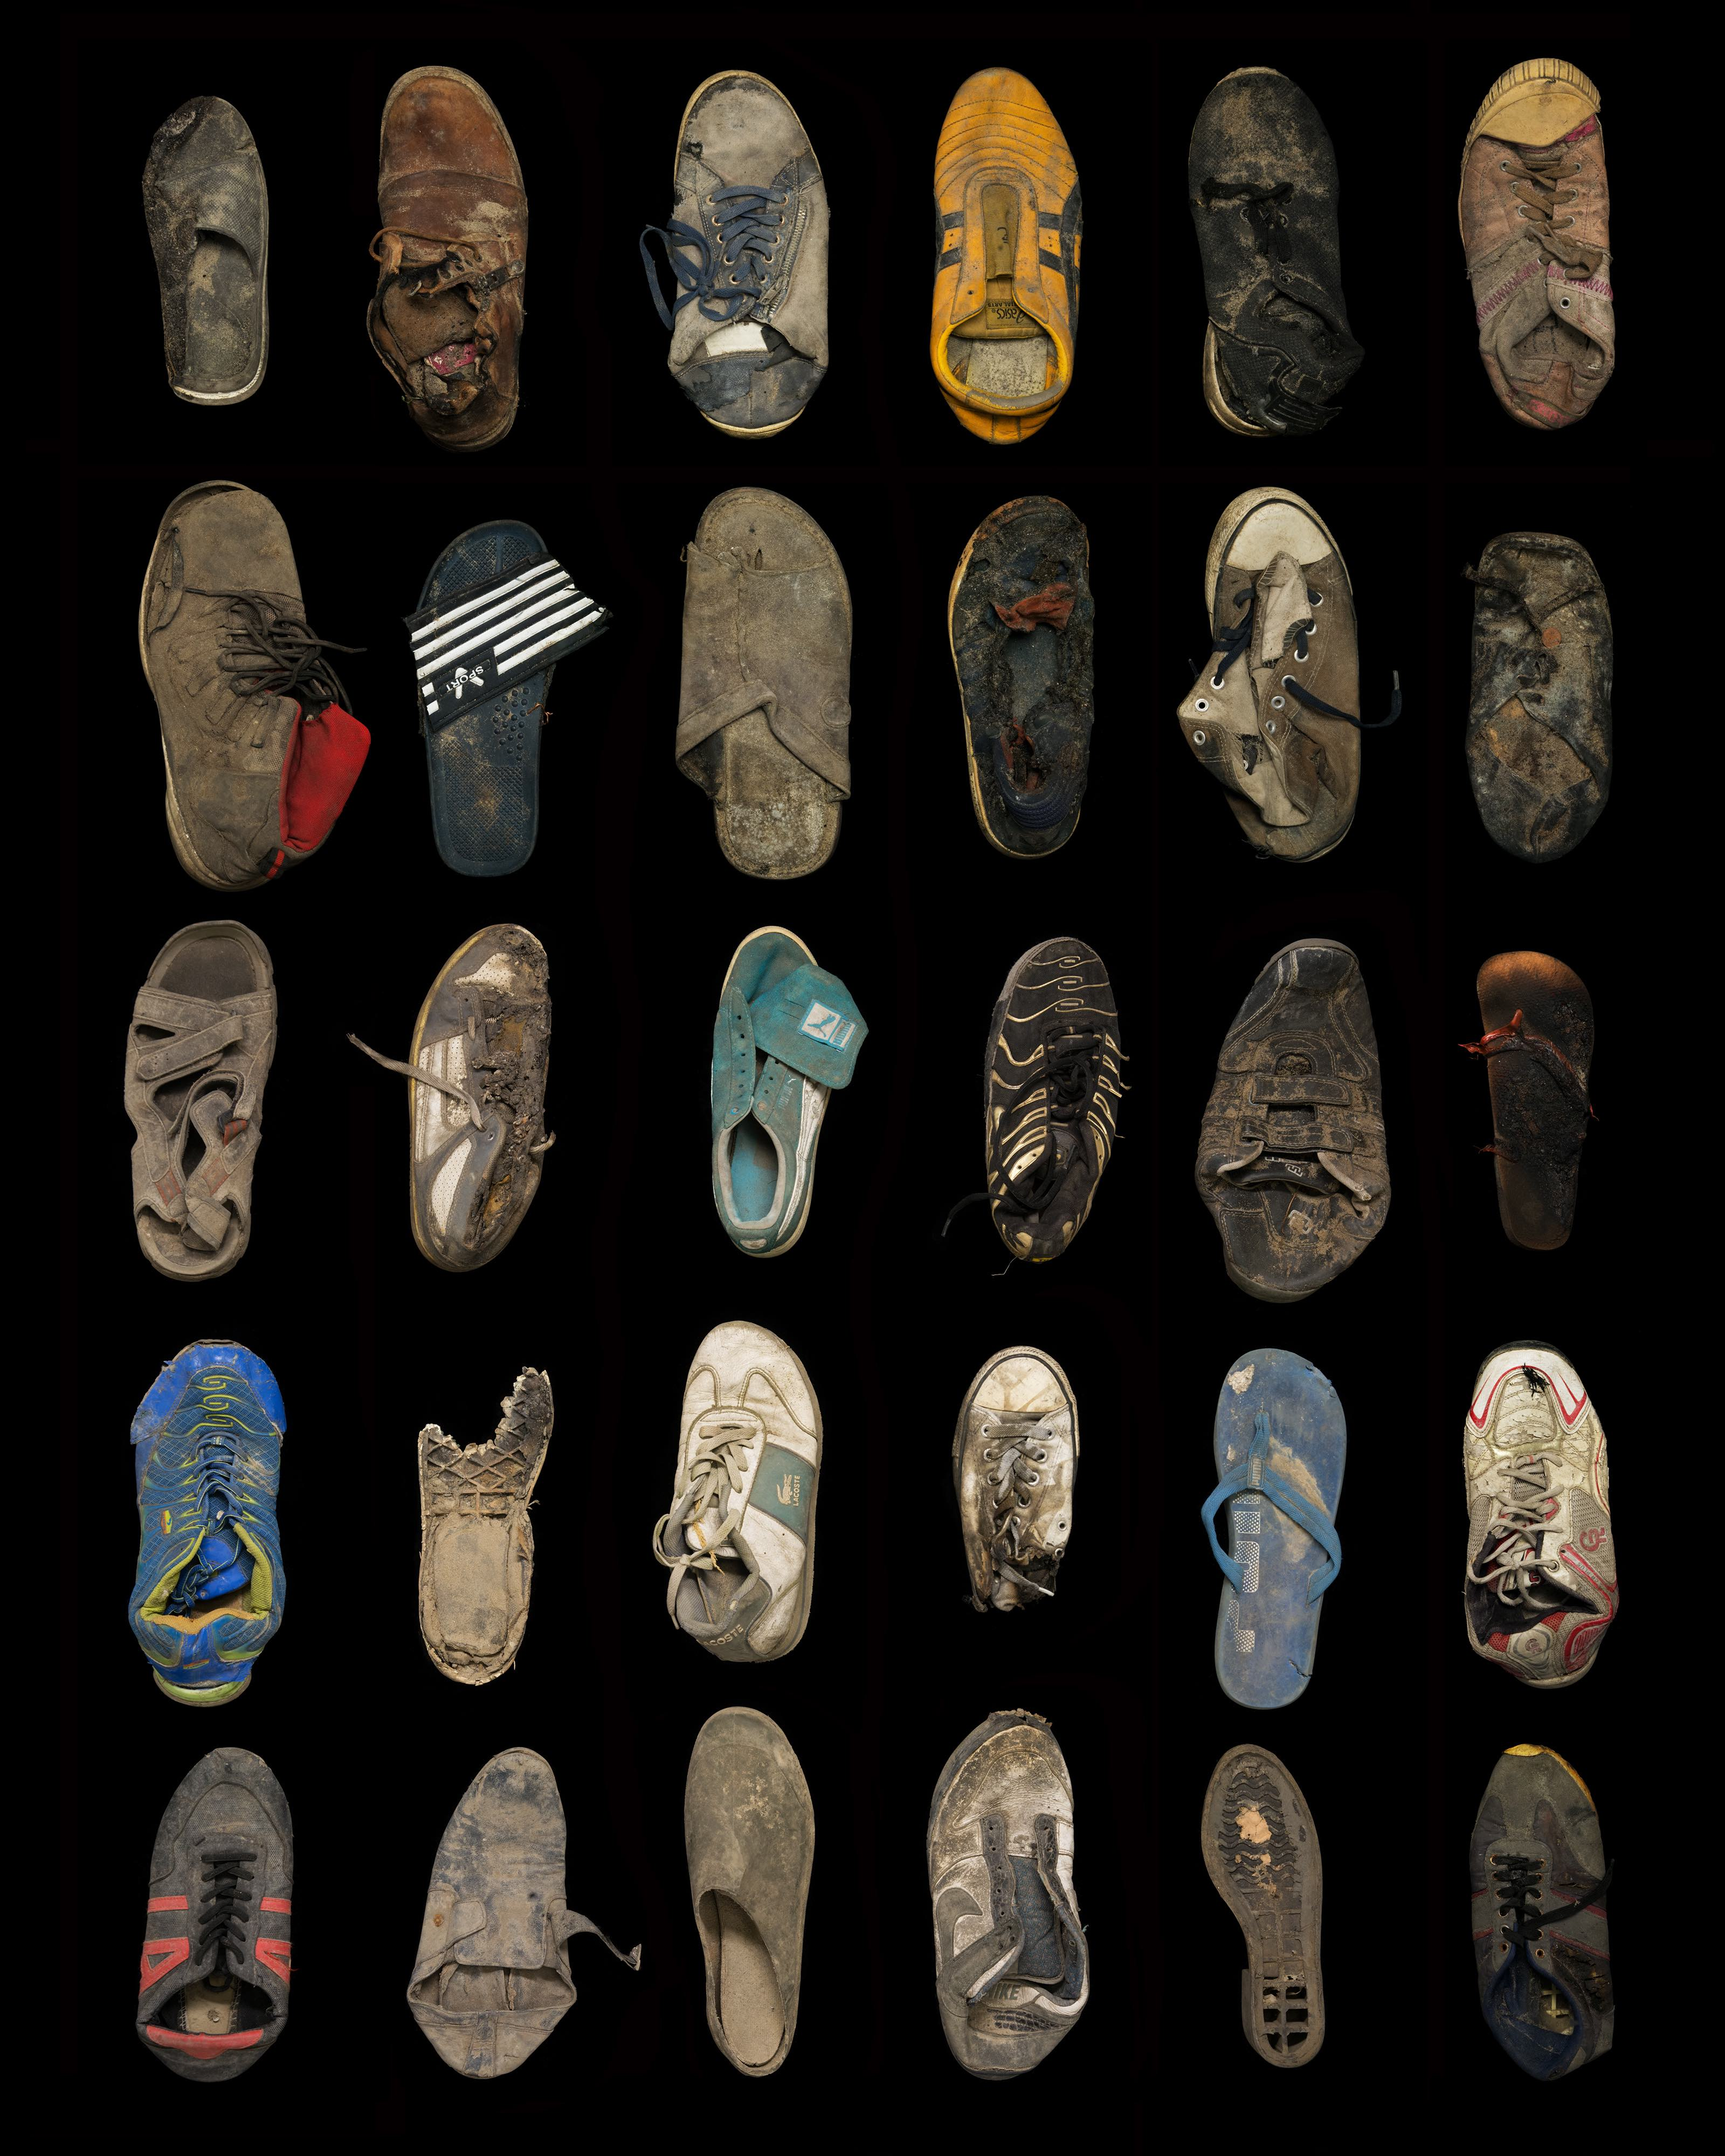 Thirty shoes, trainers and sandals Collected 21 May, 15 September, 27 October and 28 October 2016 © Gideon Mendel